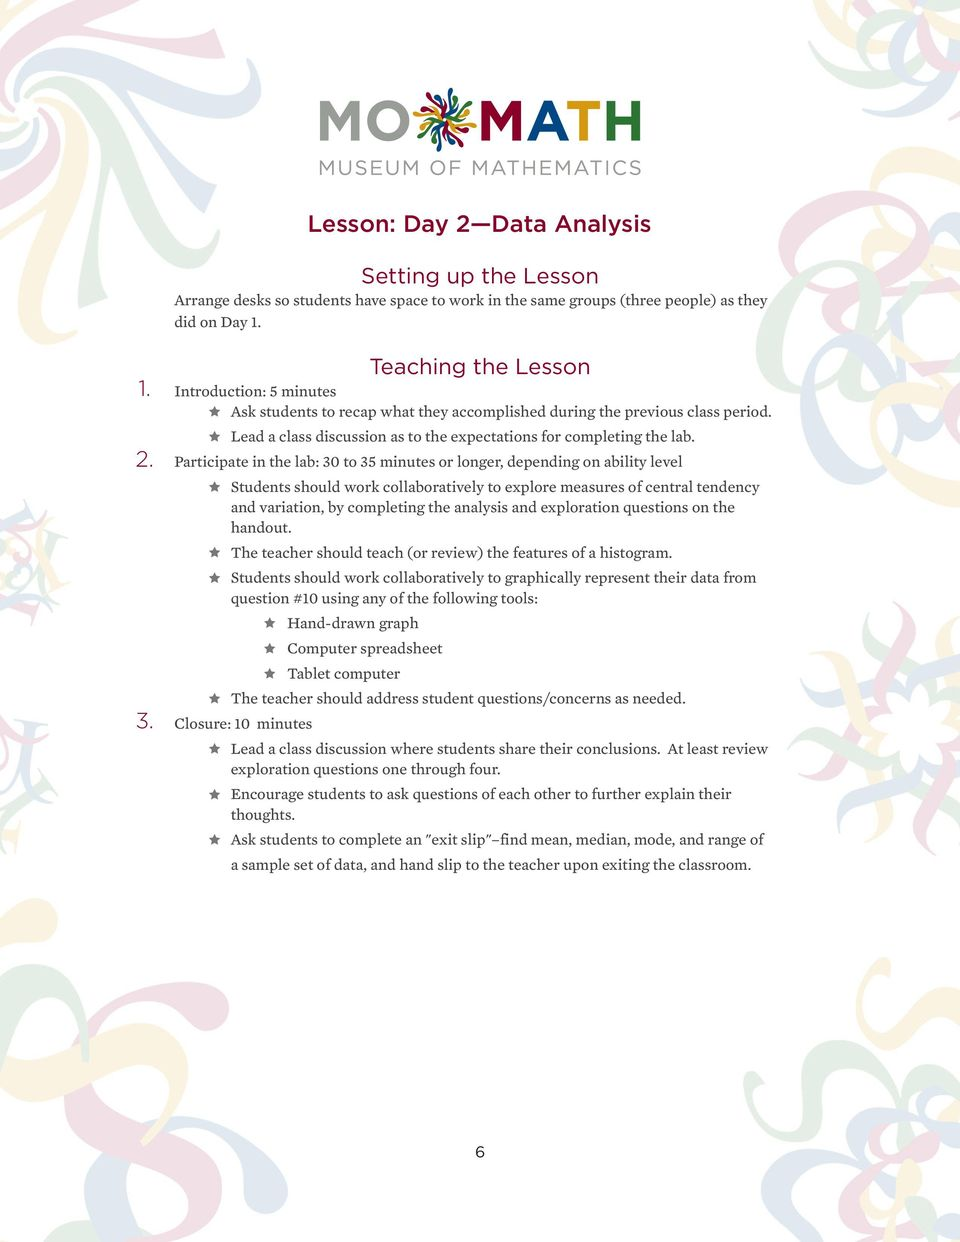 Participate in the lab: 30 to 35 minutes or longer, depending on ability level Students should work collaboratively to explore measures of central tendency and variation, by completing the analysis